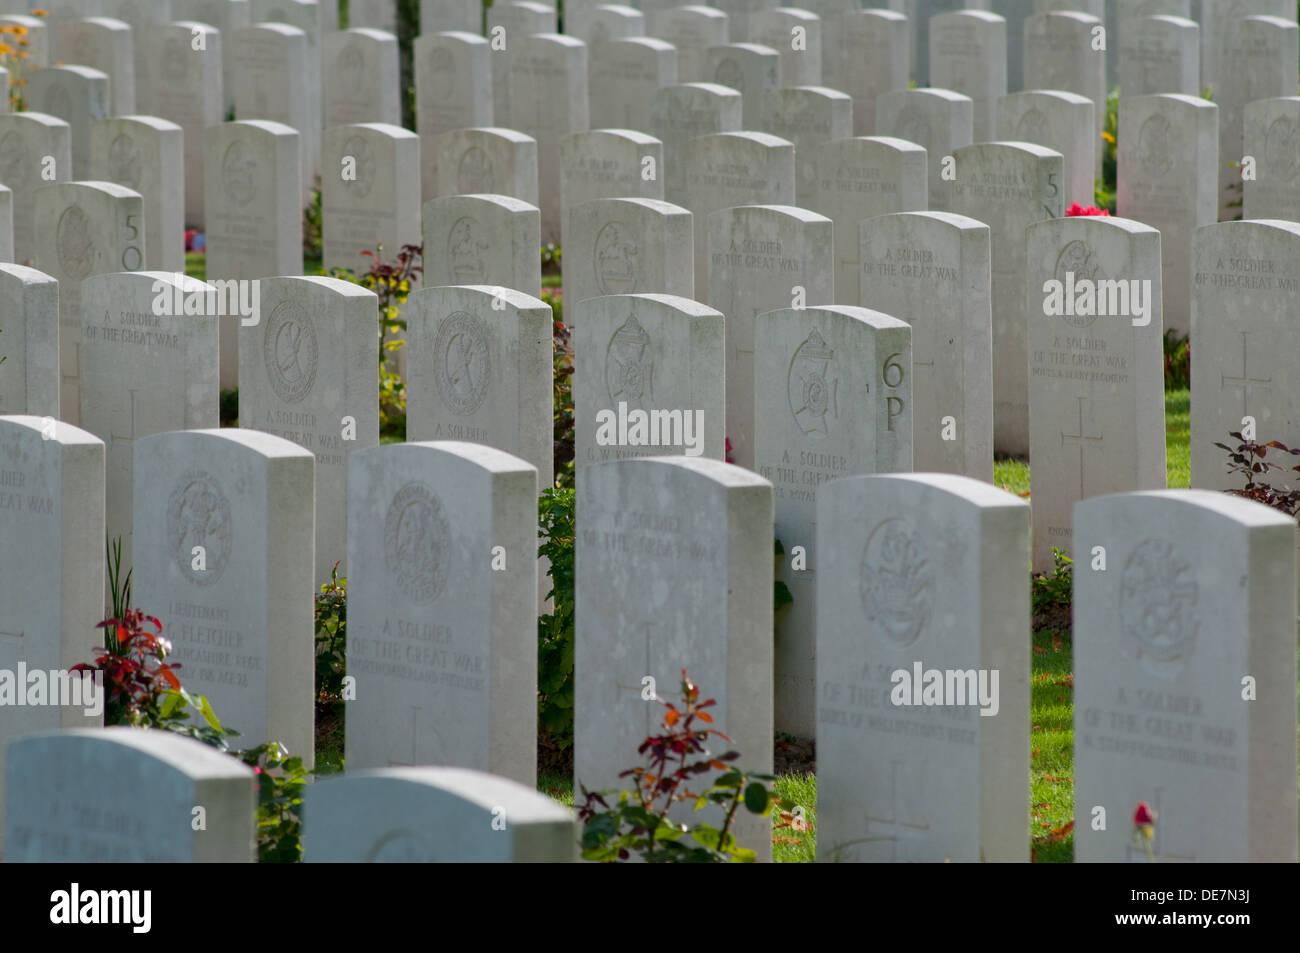 Mass of headstones, stone of remembrance in Delville Wood South African WW1 war cemetery, Somme, France - Stock Image